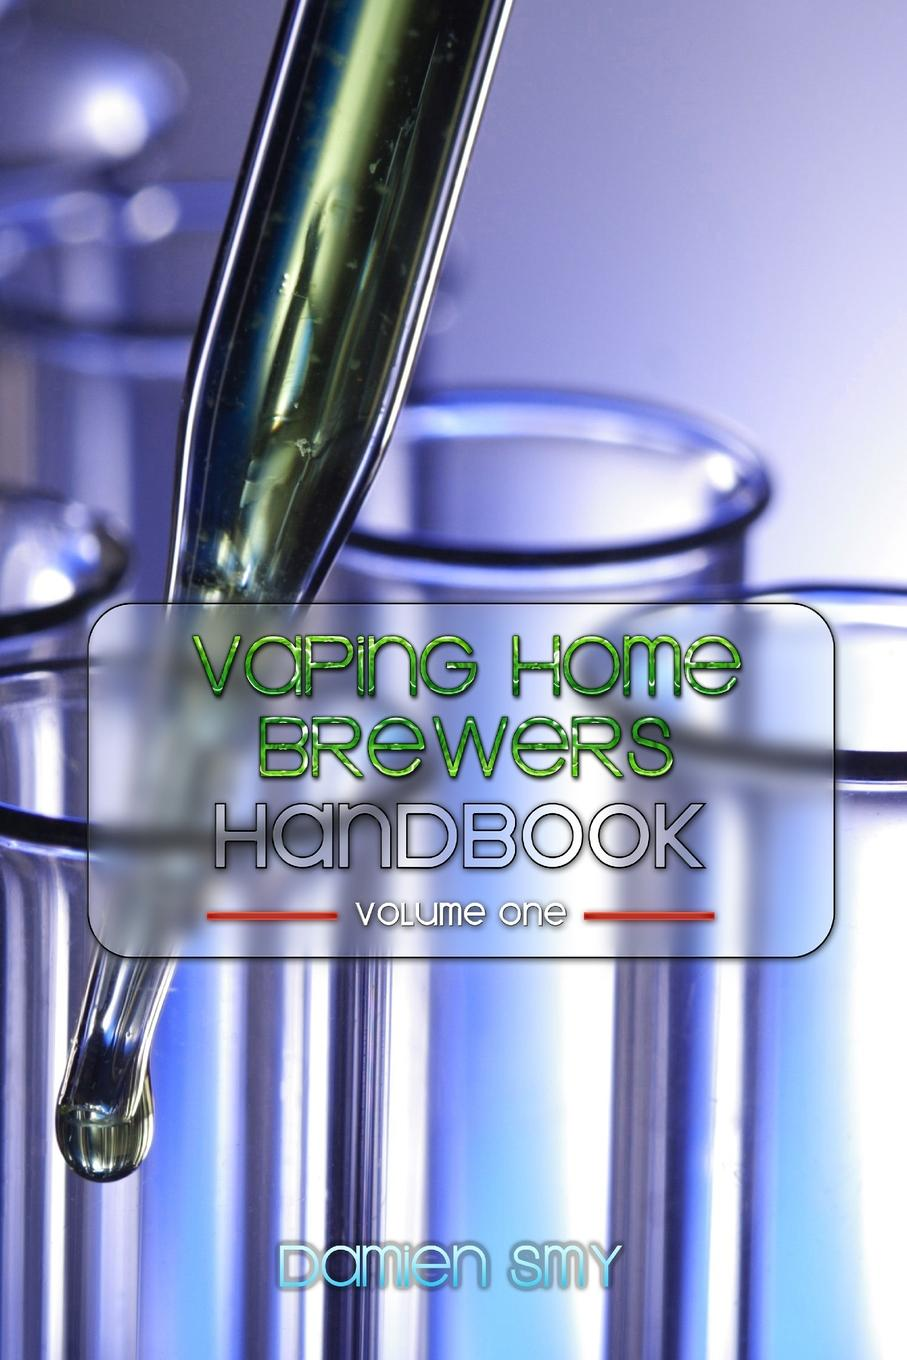 Damien Smy Vaping Home Brewers Handbook Volume 1 the recipe writer s handbook